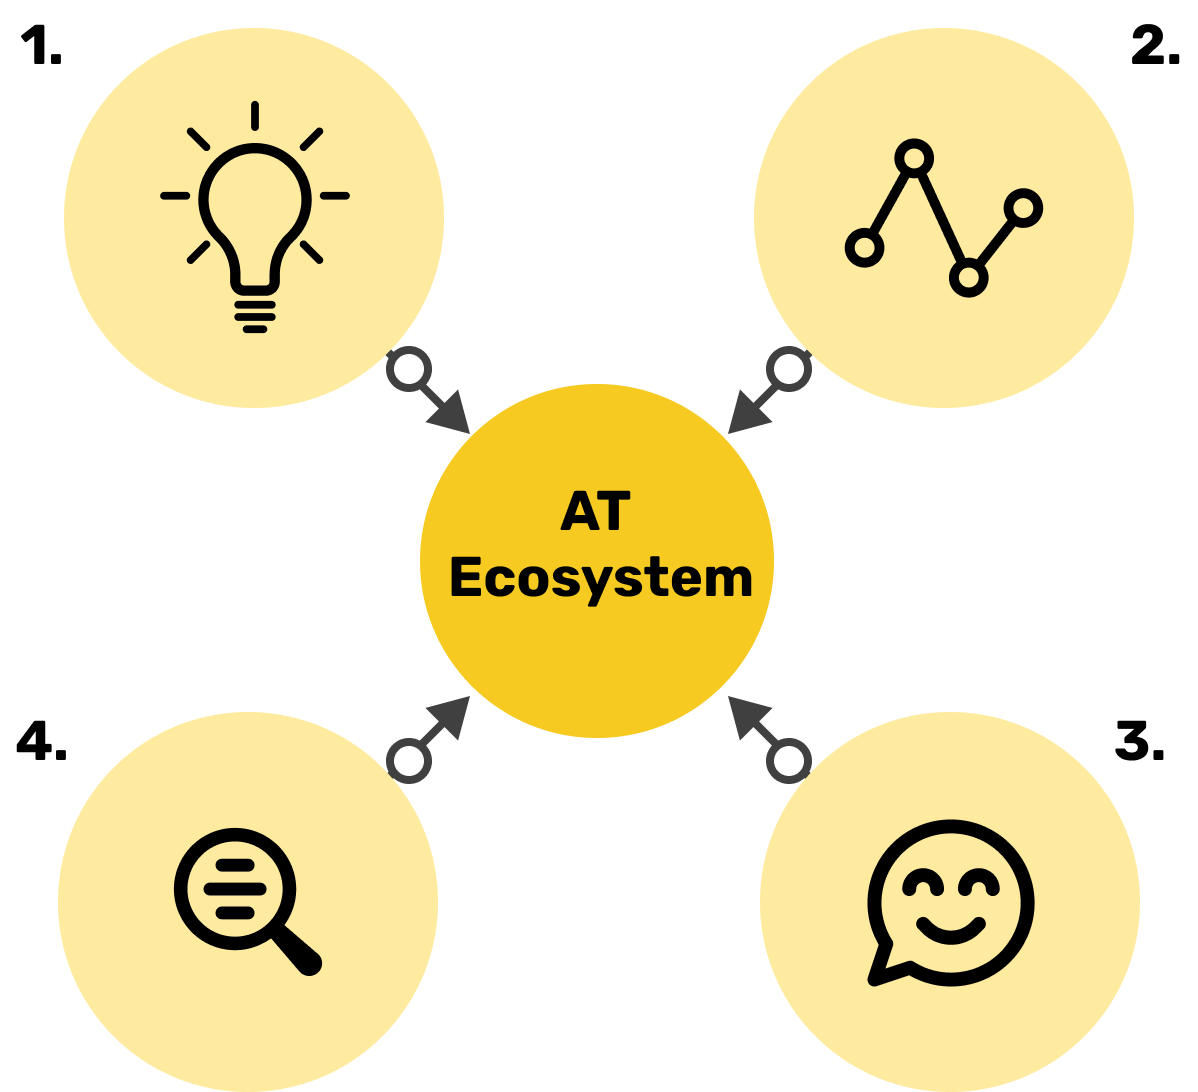 5 circles are shown. The first circle has a lightbulb in it, circle 2 has a data graphic, circle 3 has a smiling face in it, circle 4 has a magnifying glass in it. The central circle has the words 'AT ecosystem' in it.